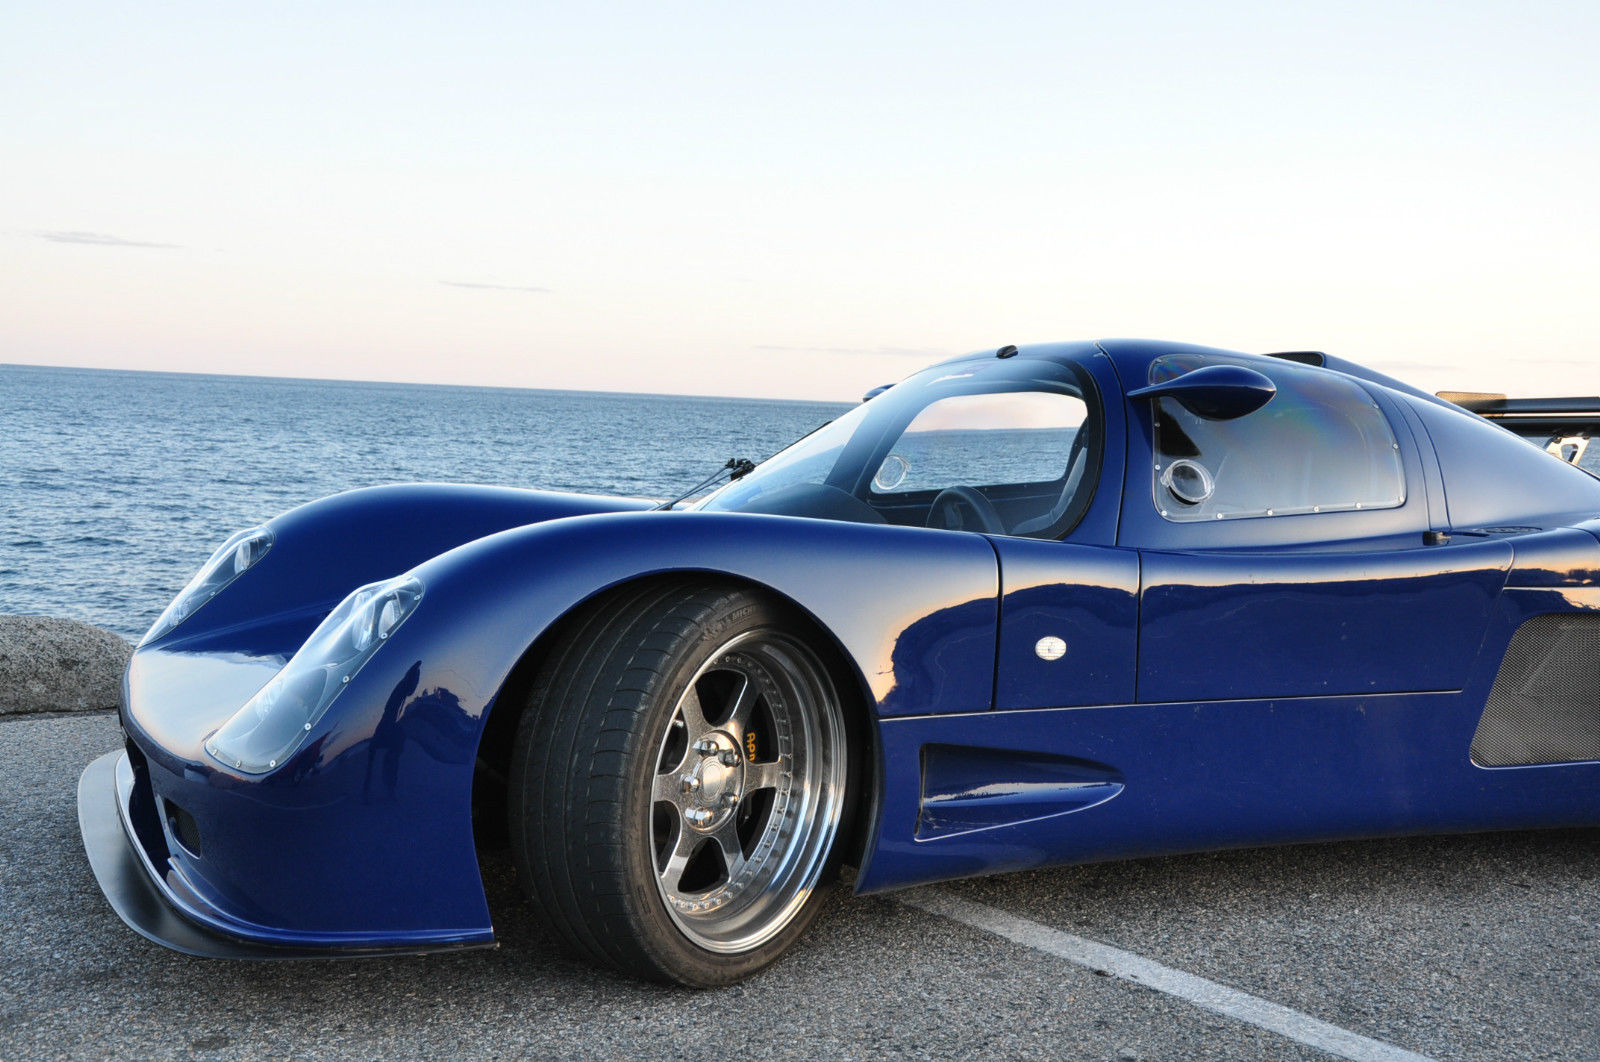 2012 Ultima Gtr Royal Blue With 704hp Ls7 For Sale